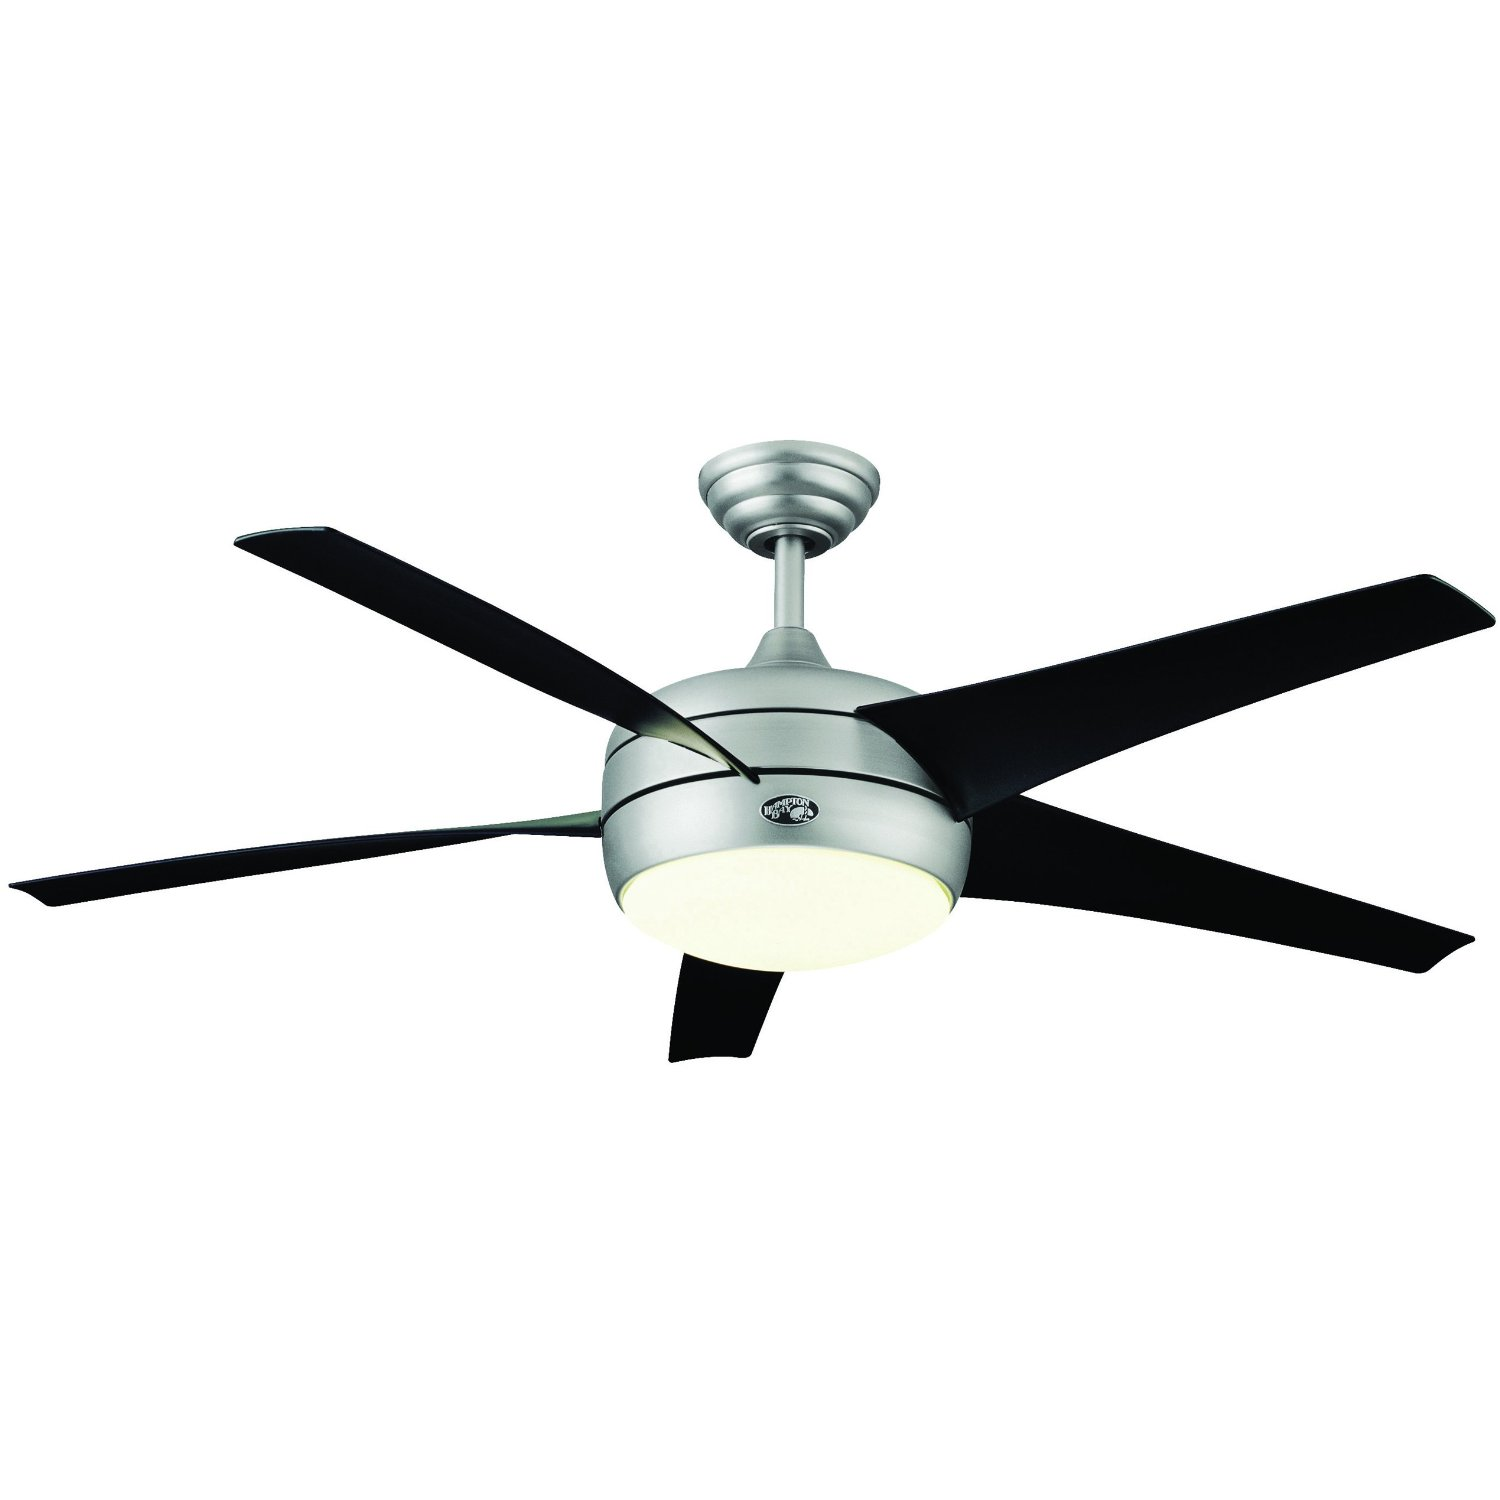 "Hampton Bay Windward II 54"" Ceiling Fan w Light Brushed Steel"